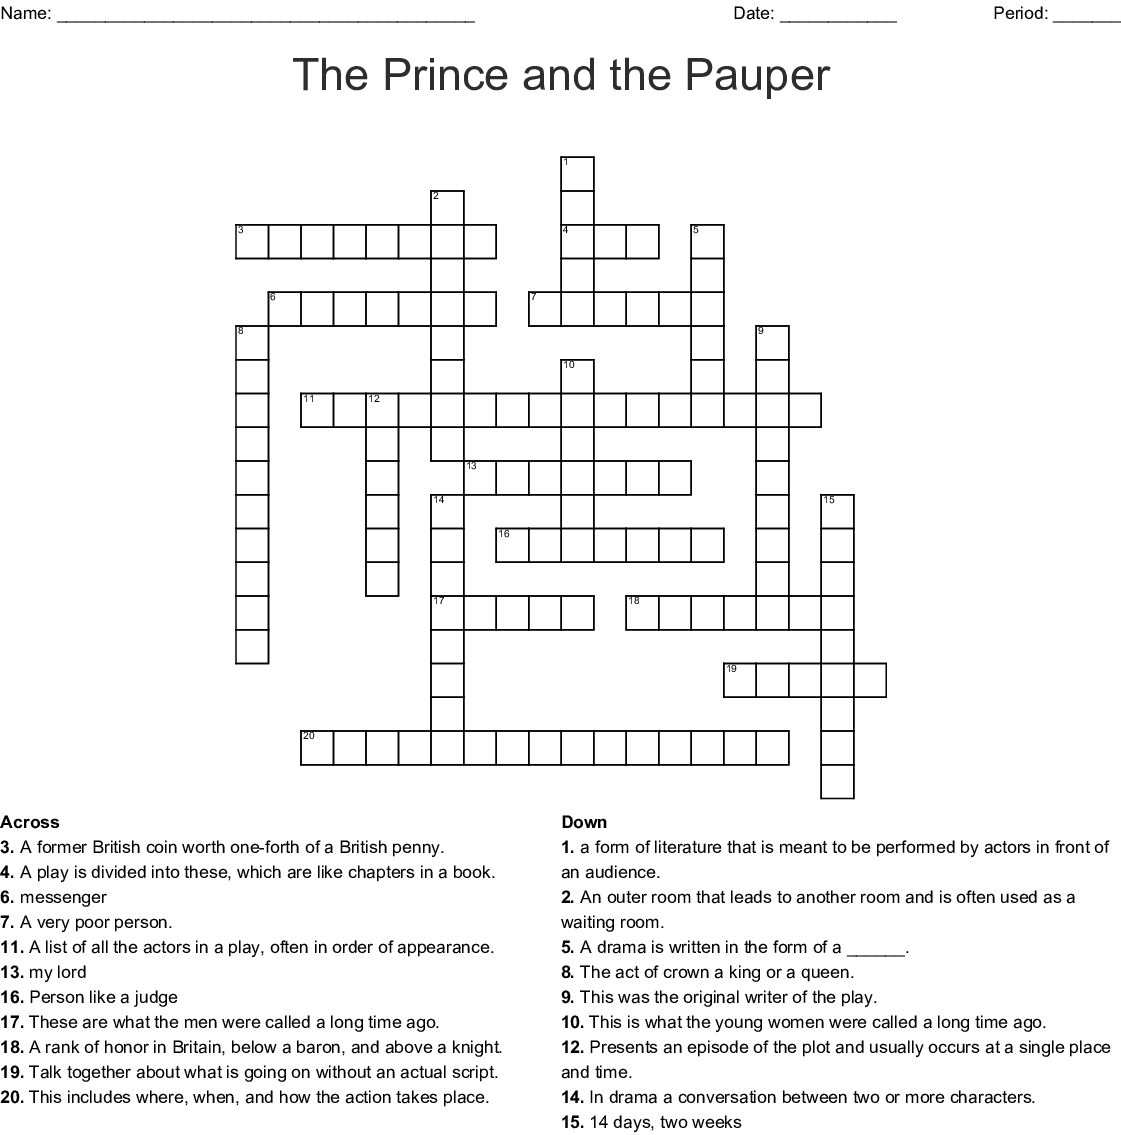 The Prince And The Pauper Vocabulary Word Search